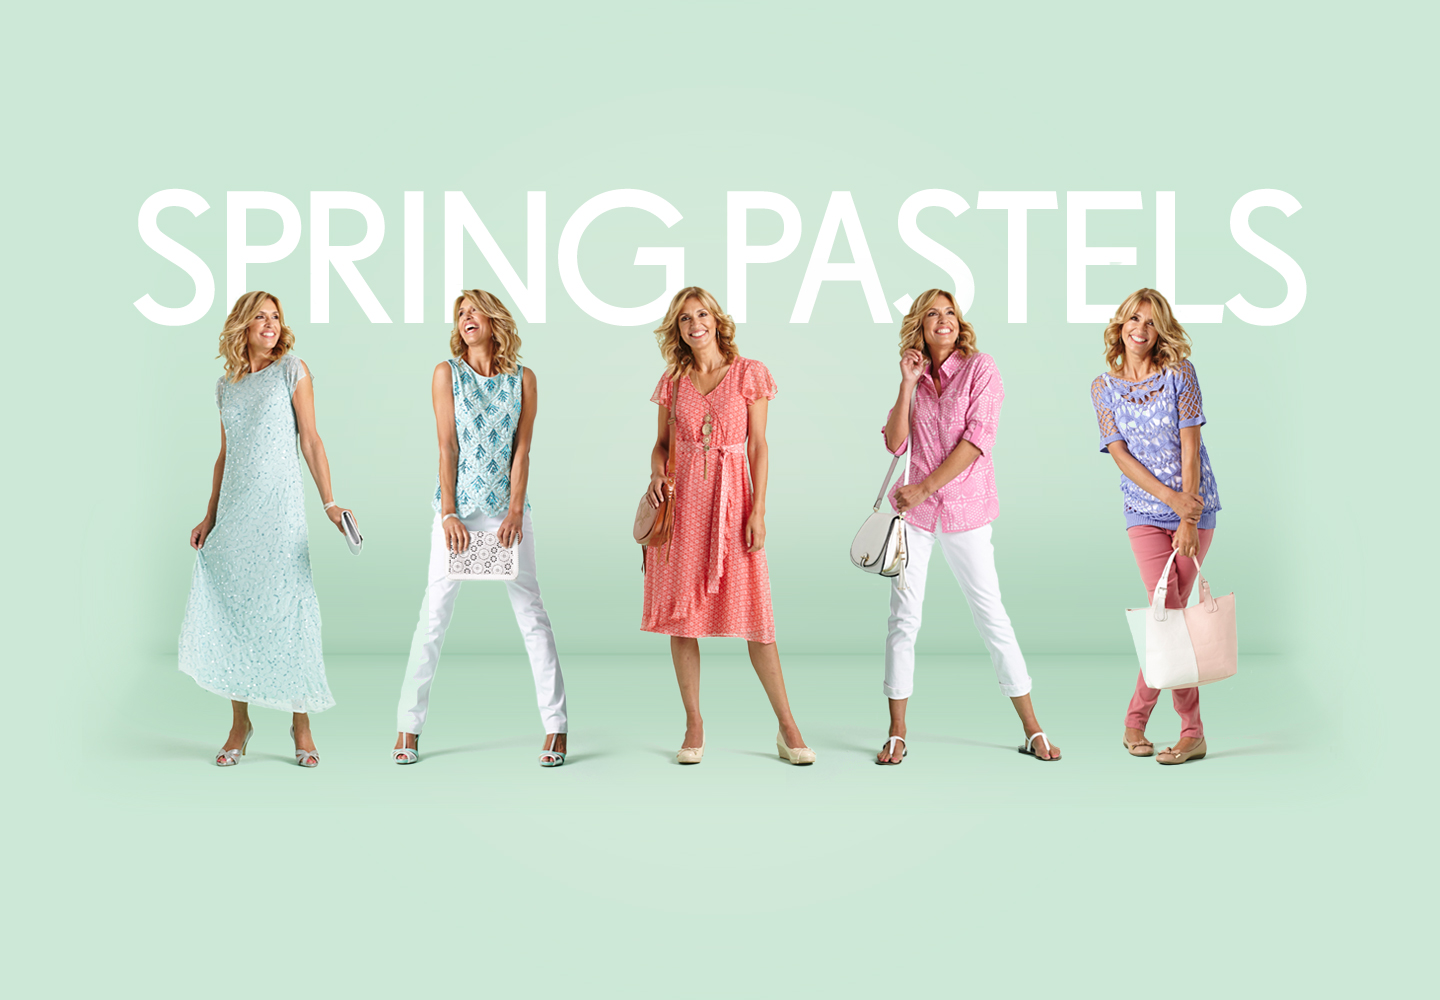 Inspire me with Spring Pastels